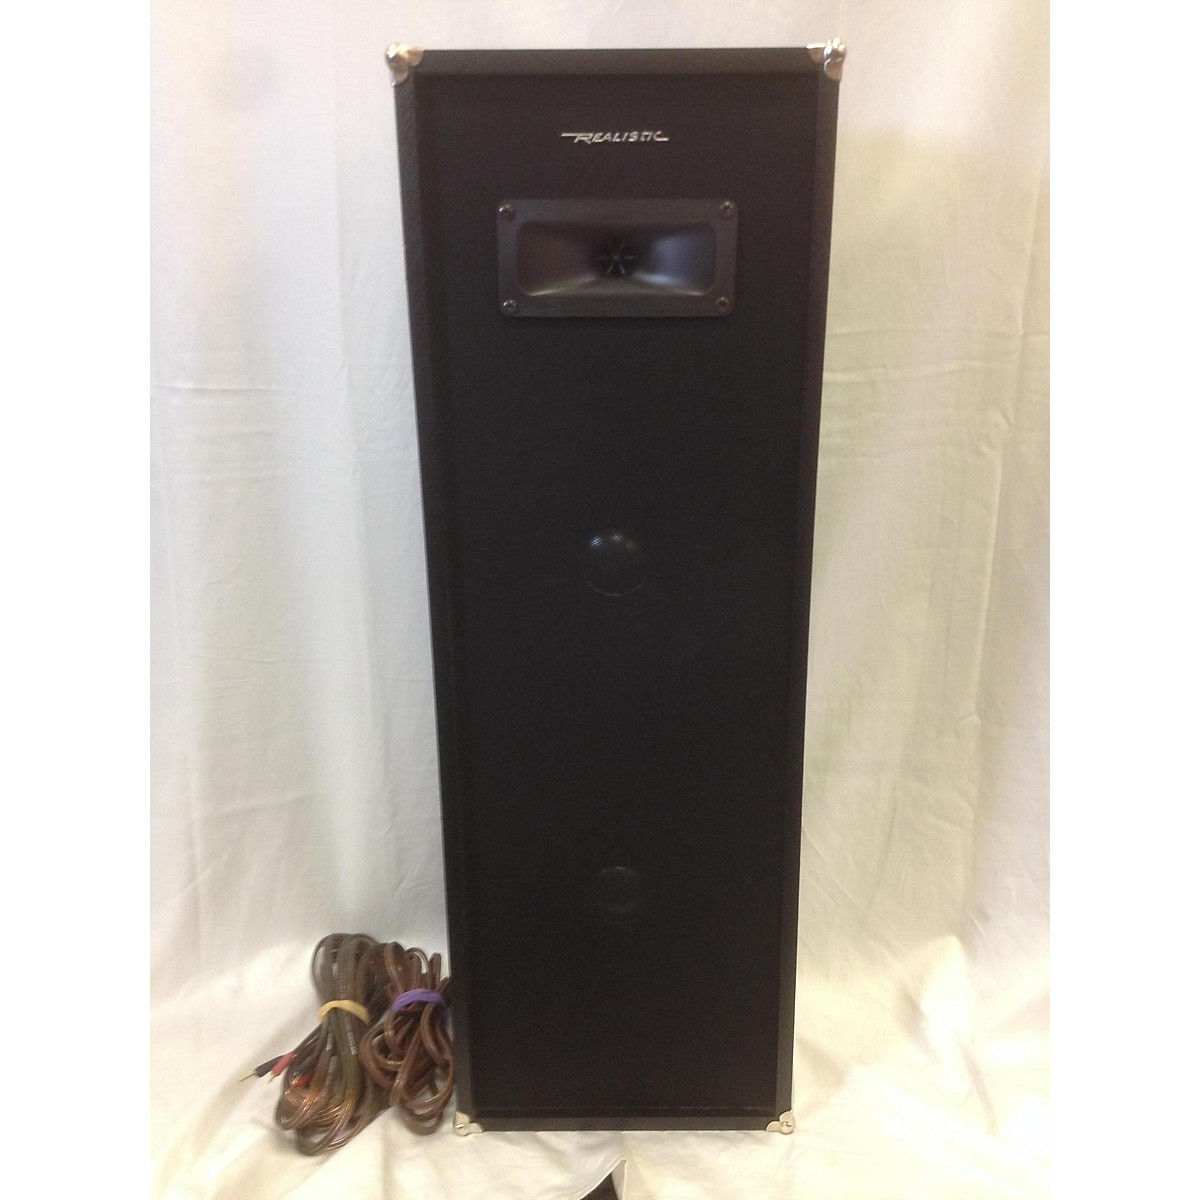 Realistic PA-96 Unpowered Speaker